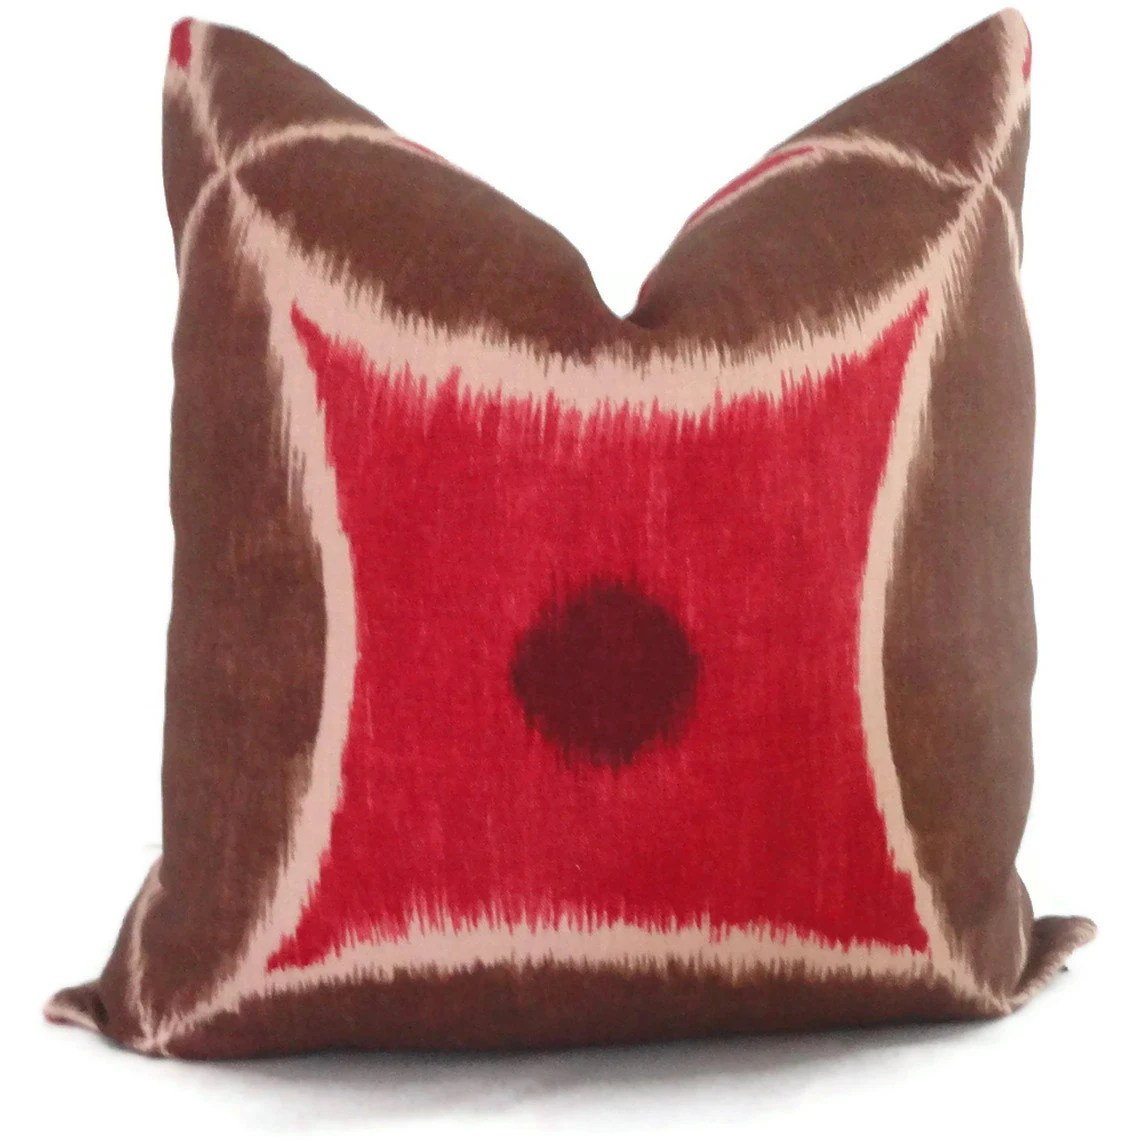 SALE Duralee Red and Brown Ikat Decorative Pillow Cover 18x18, 20x20 or 22x22, Accent Pillow, Throw Pillow, Pillow Case - PopOColor